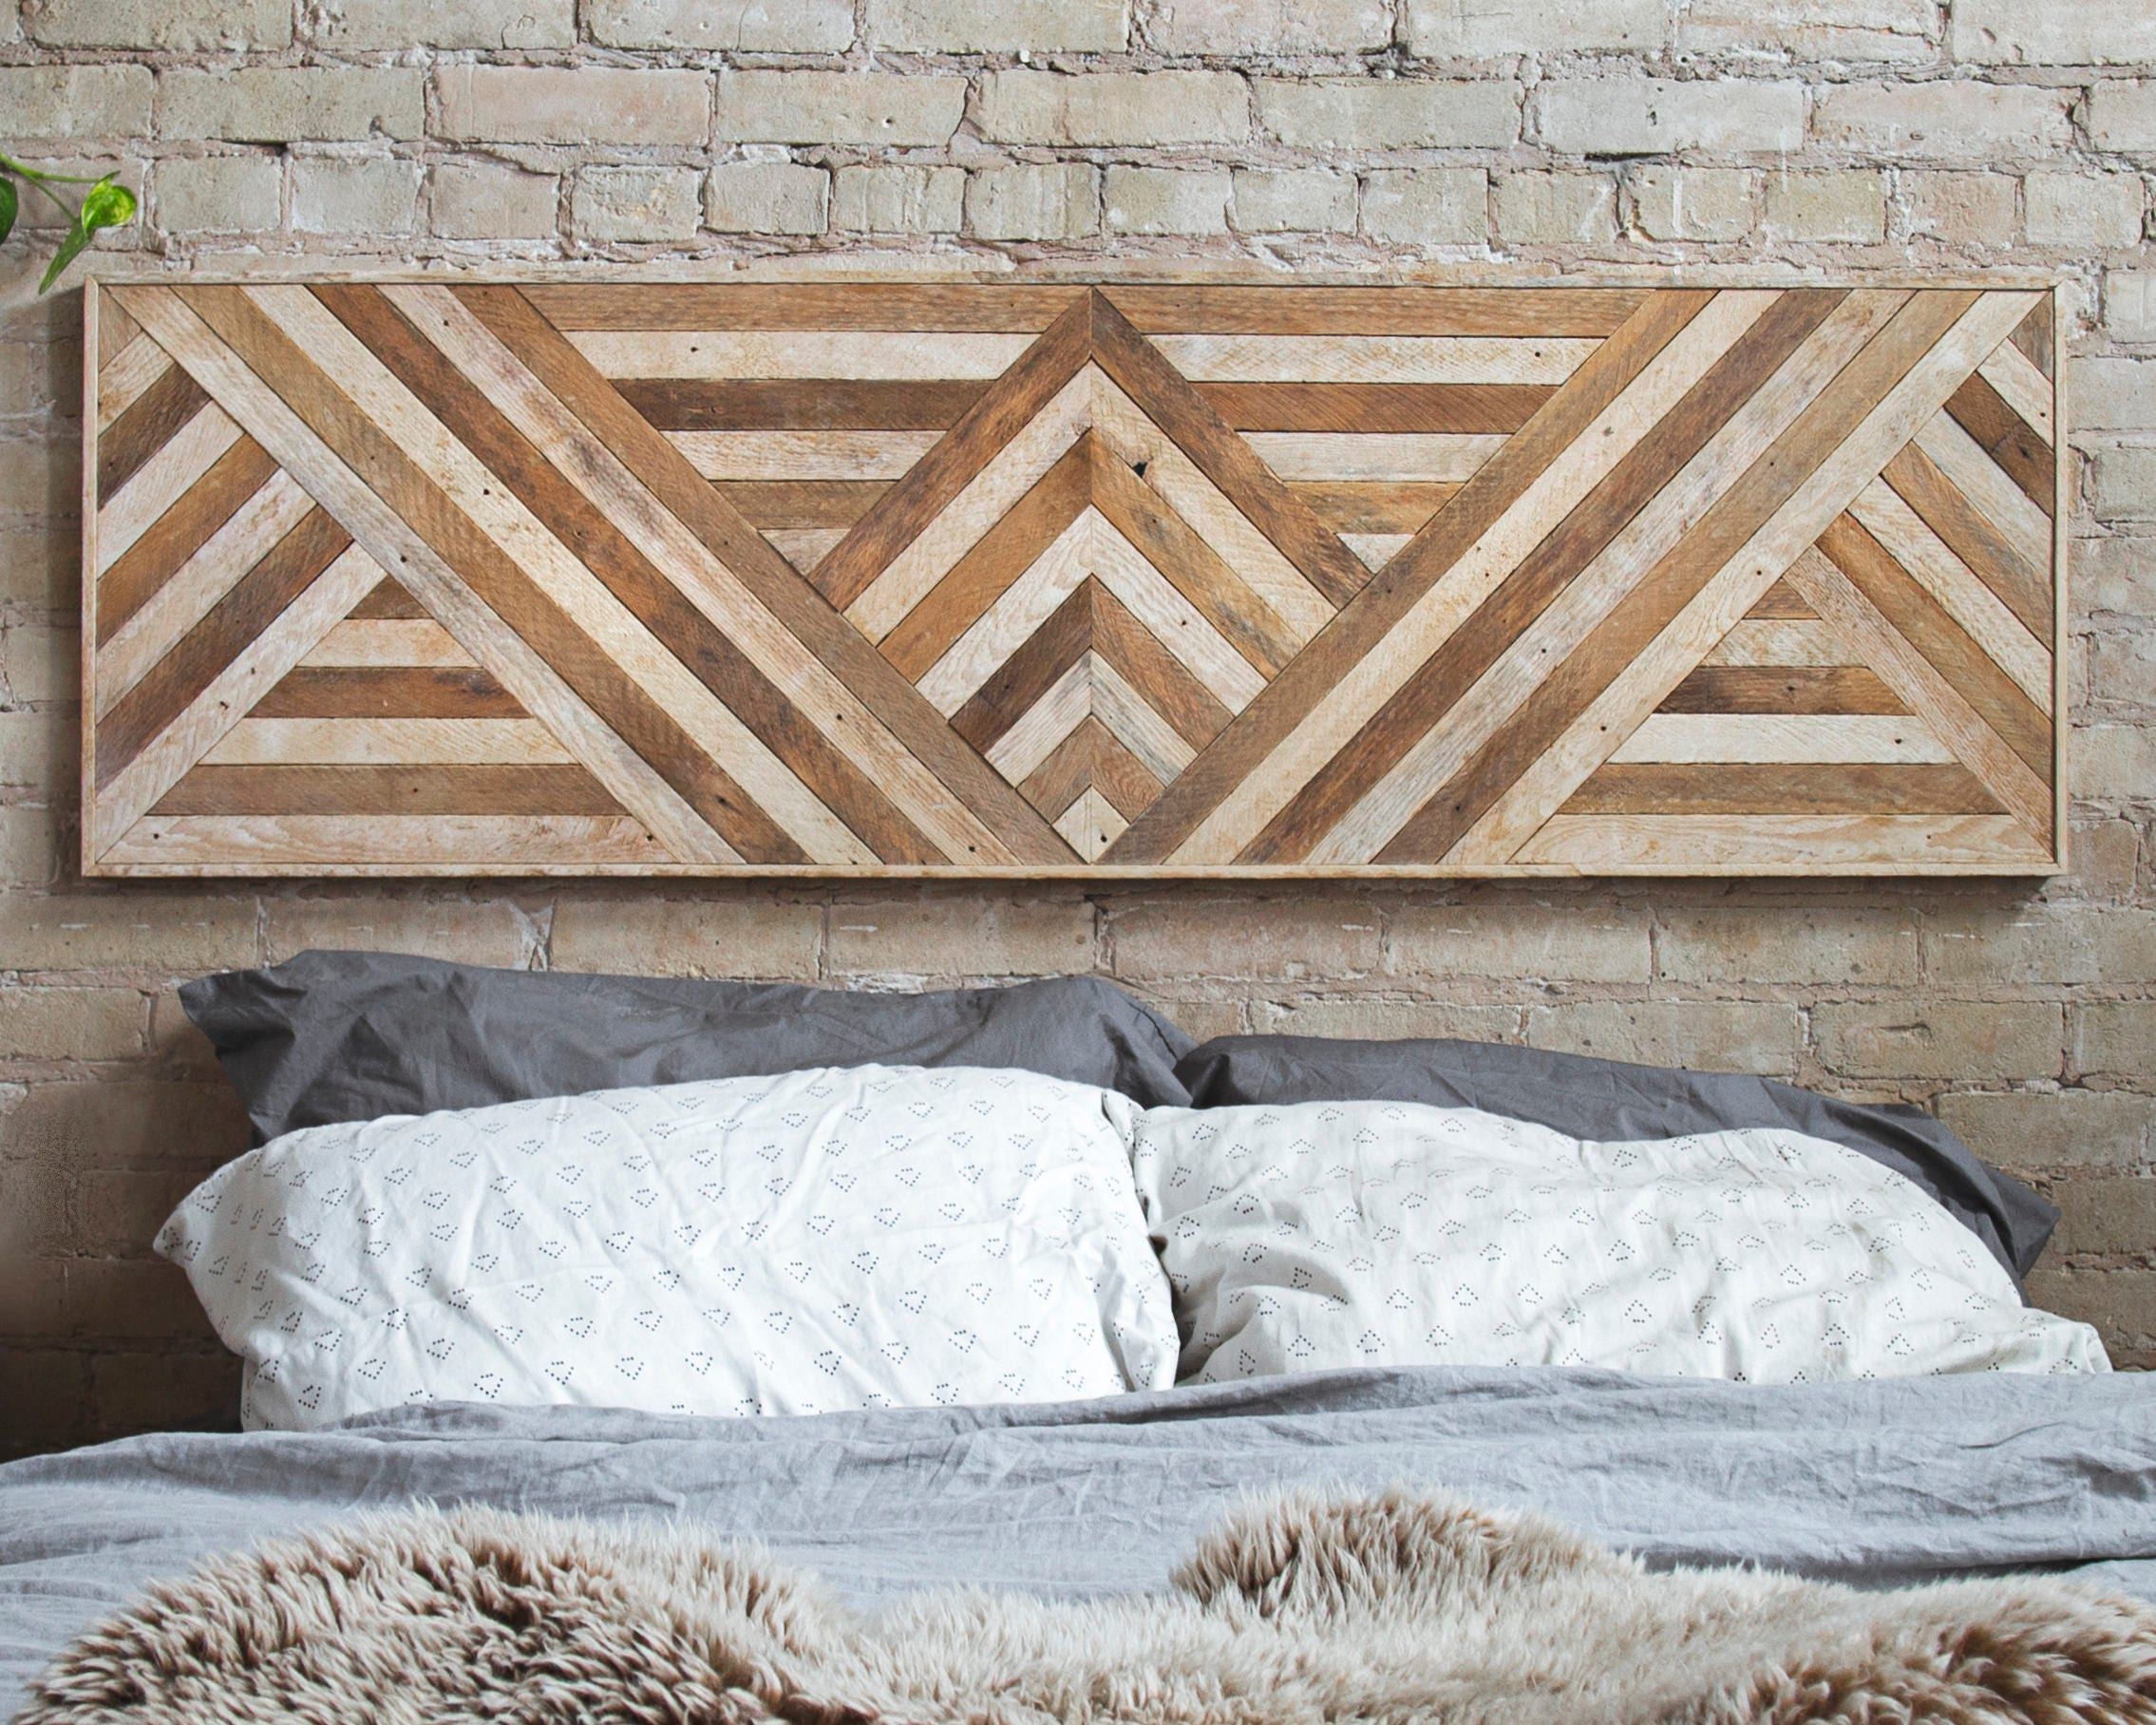 Reclaimed Wood Wall Art Queen Headboard Wood Wall Decor Geometric Triangle Pattern 60\